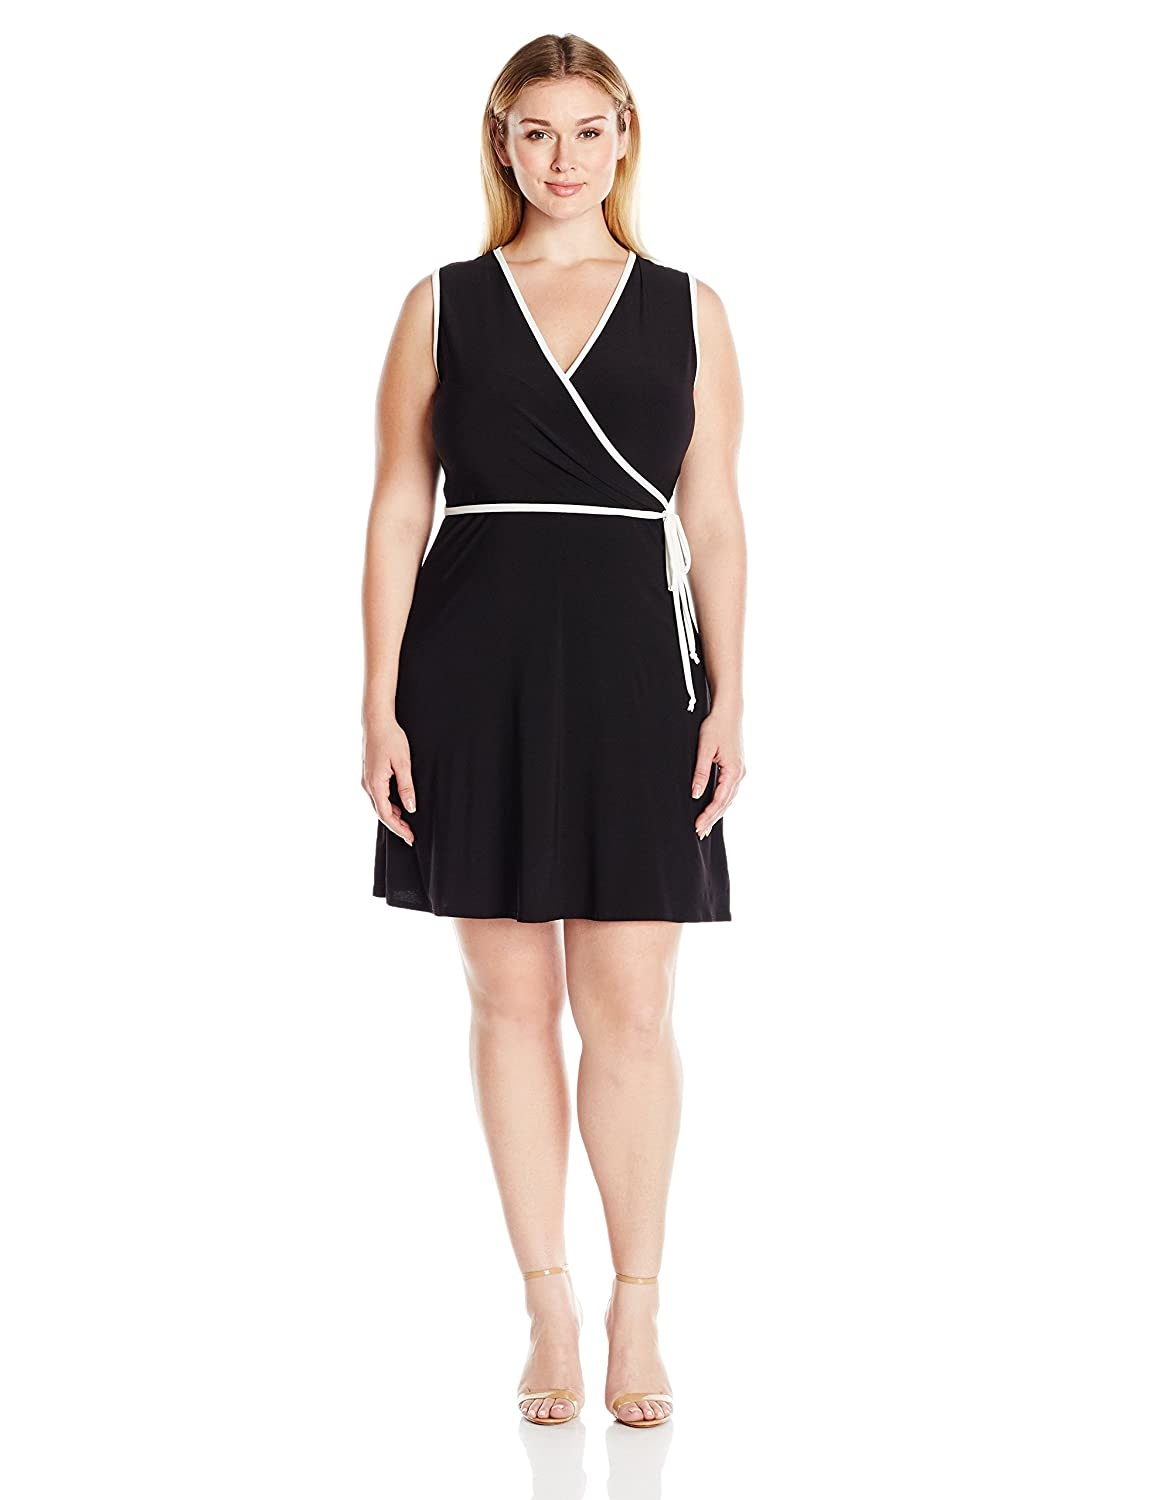 Star Vixen Women's Plus-Size Sleeveless Fauxwrap Dress with Piping Star Vixen Child Code 3571-ITX